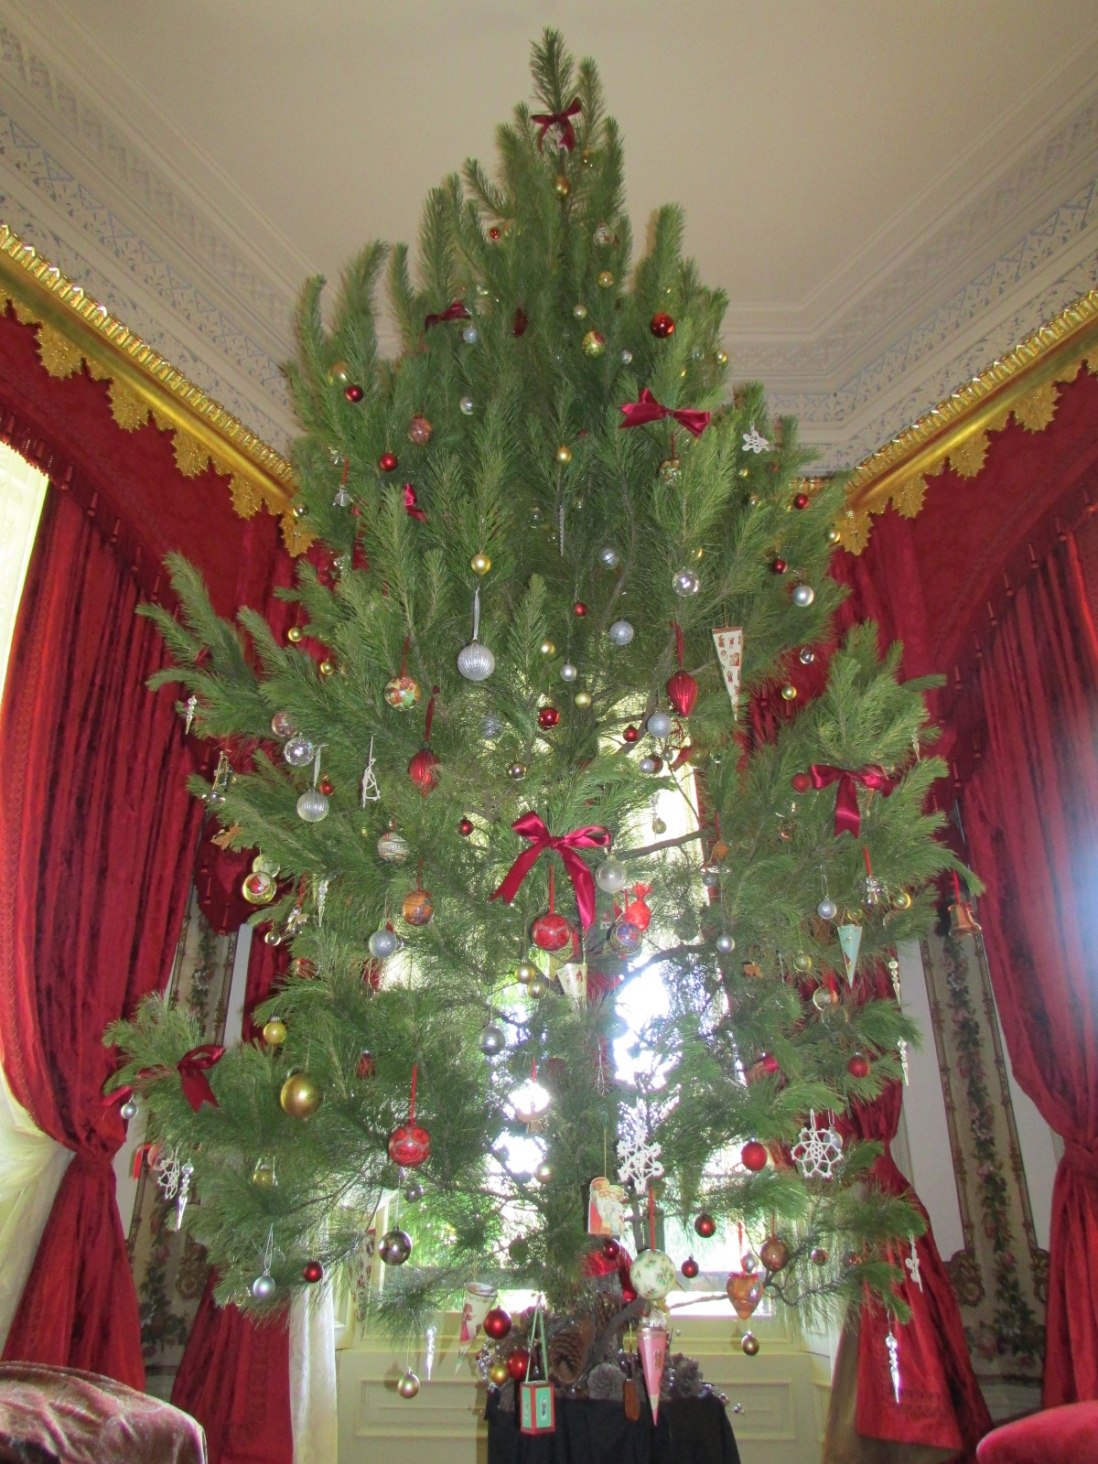 Top of tree showing ornaments.